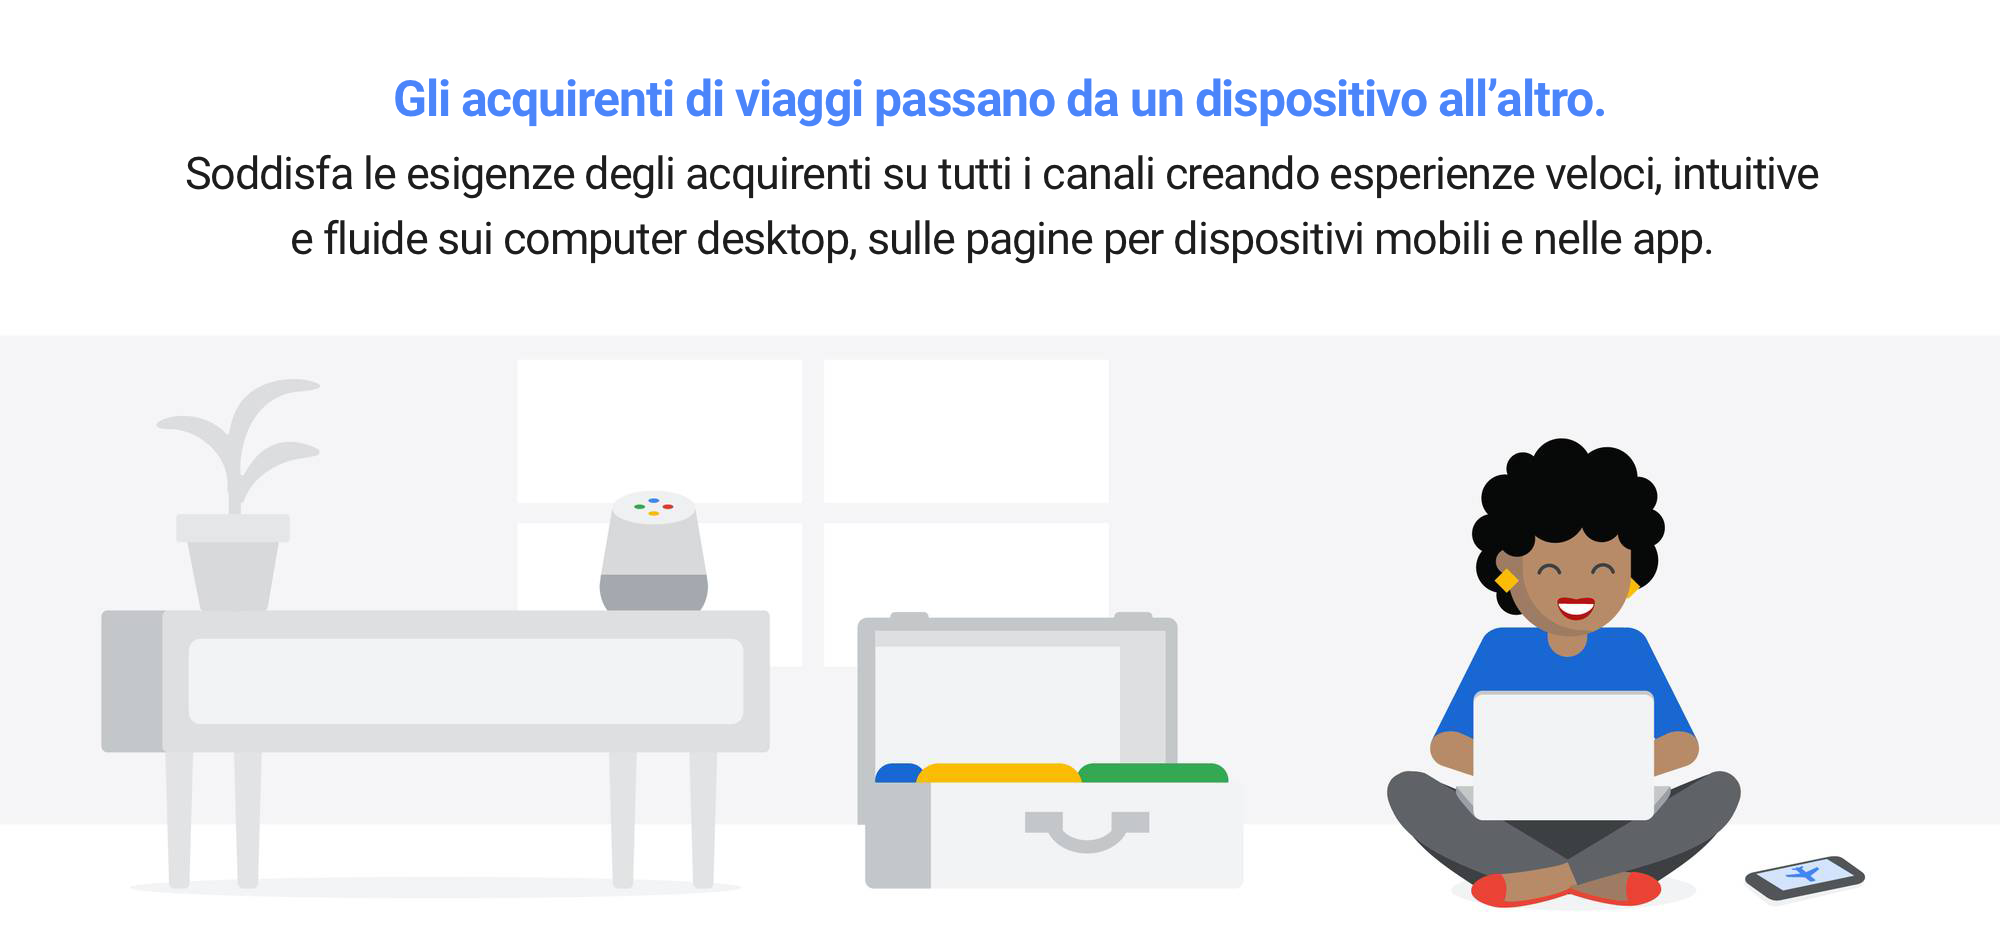 3 modi in cui il viaggiatore digitale sta cambiando e 3 modi per adeguarsi per i professionisti del marketing